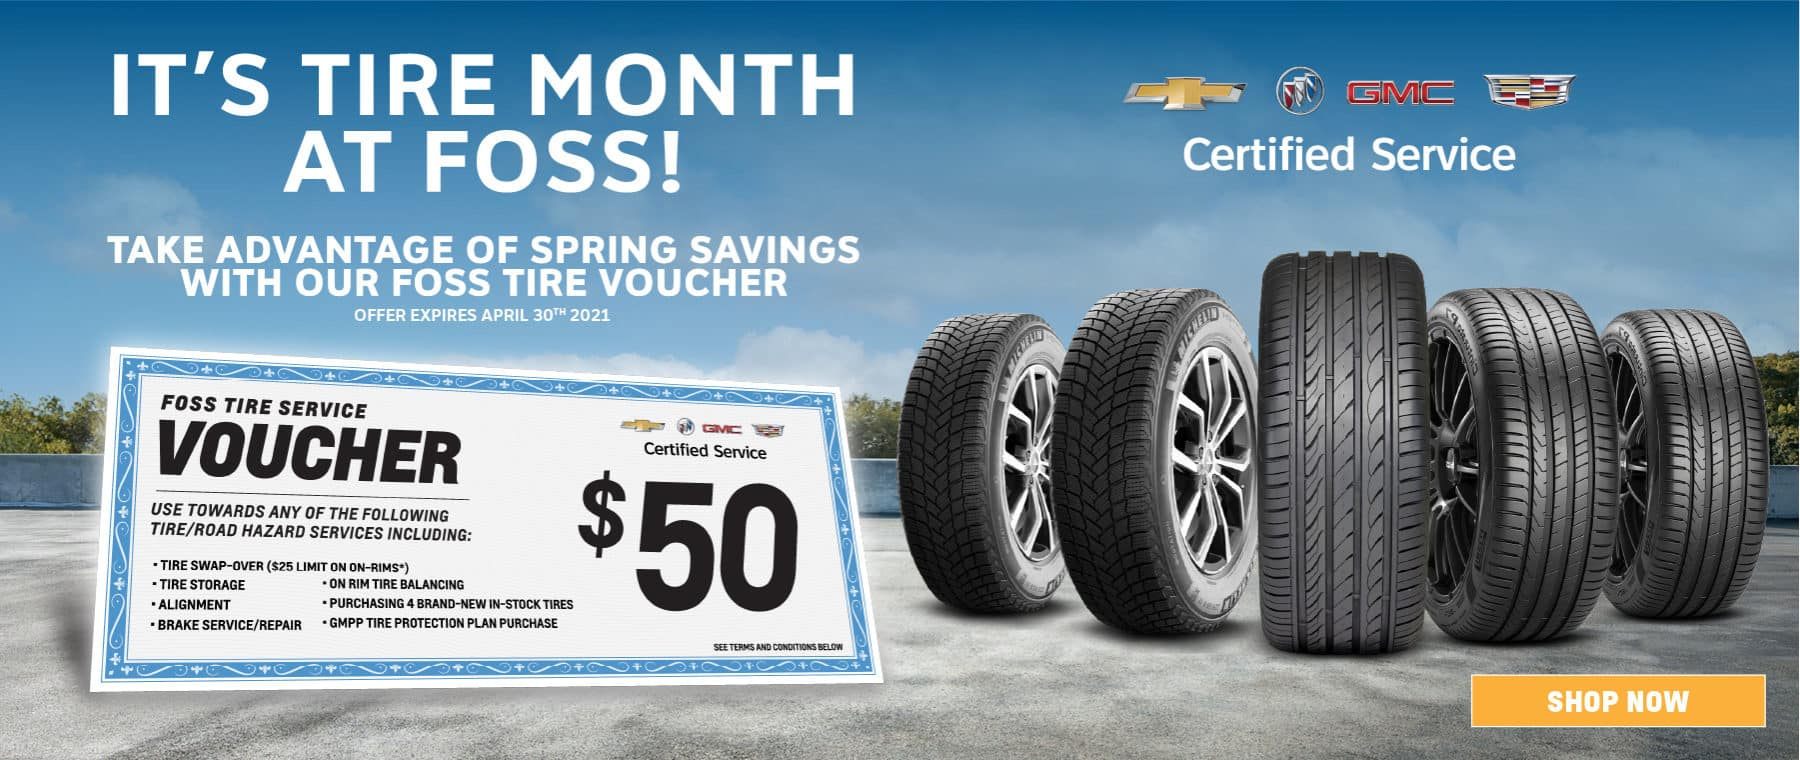 It's Tire Month at Foss